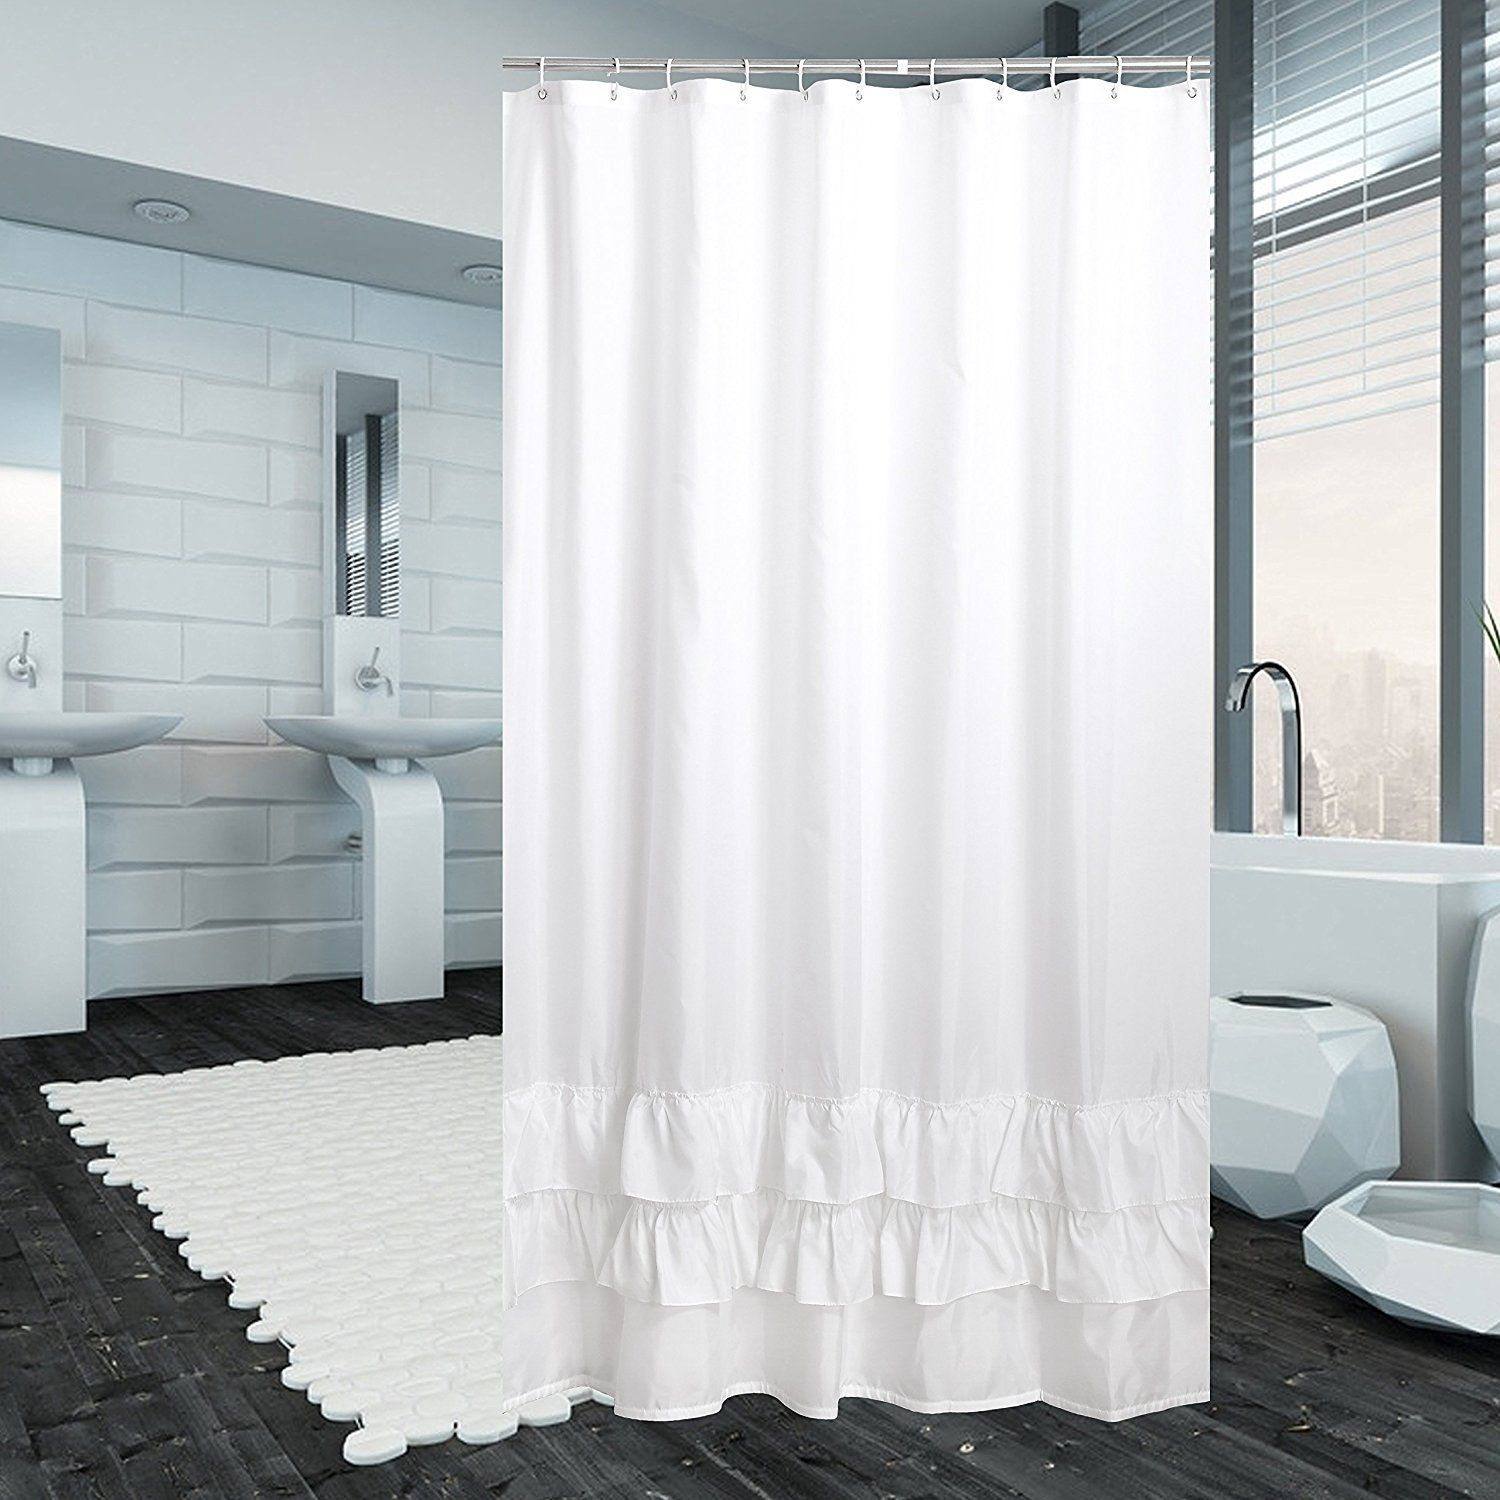 Luunaa Extra Thicken Premium Quality Ruffle Shower Curtain Polyester Fabric Washable 72x80 White Ruffle Shower Curtains Extra Long Shower Curtain Fabric Shower Curtains